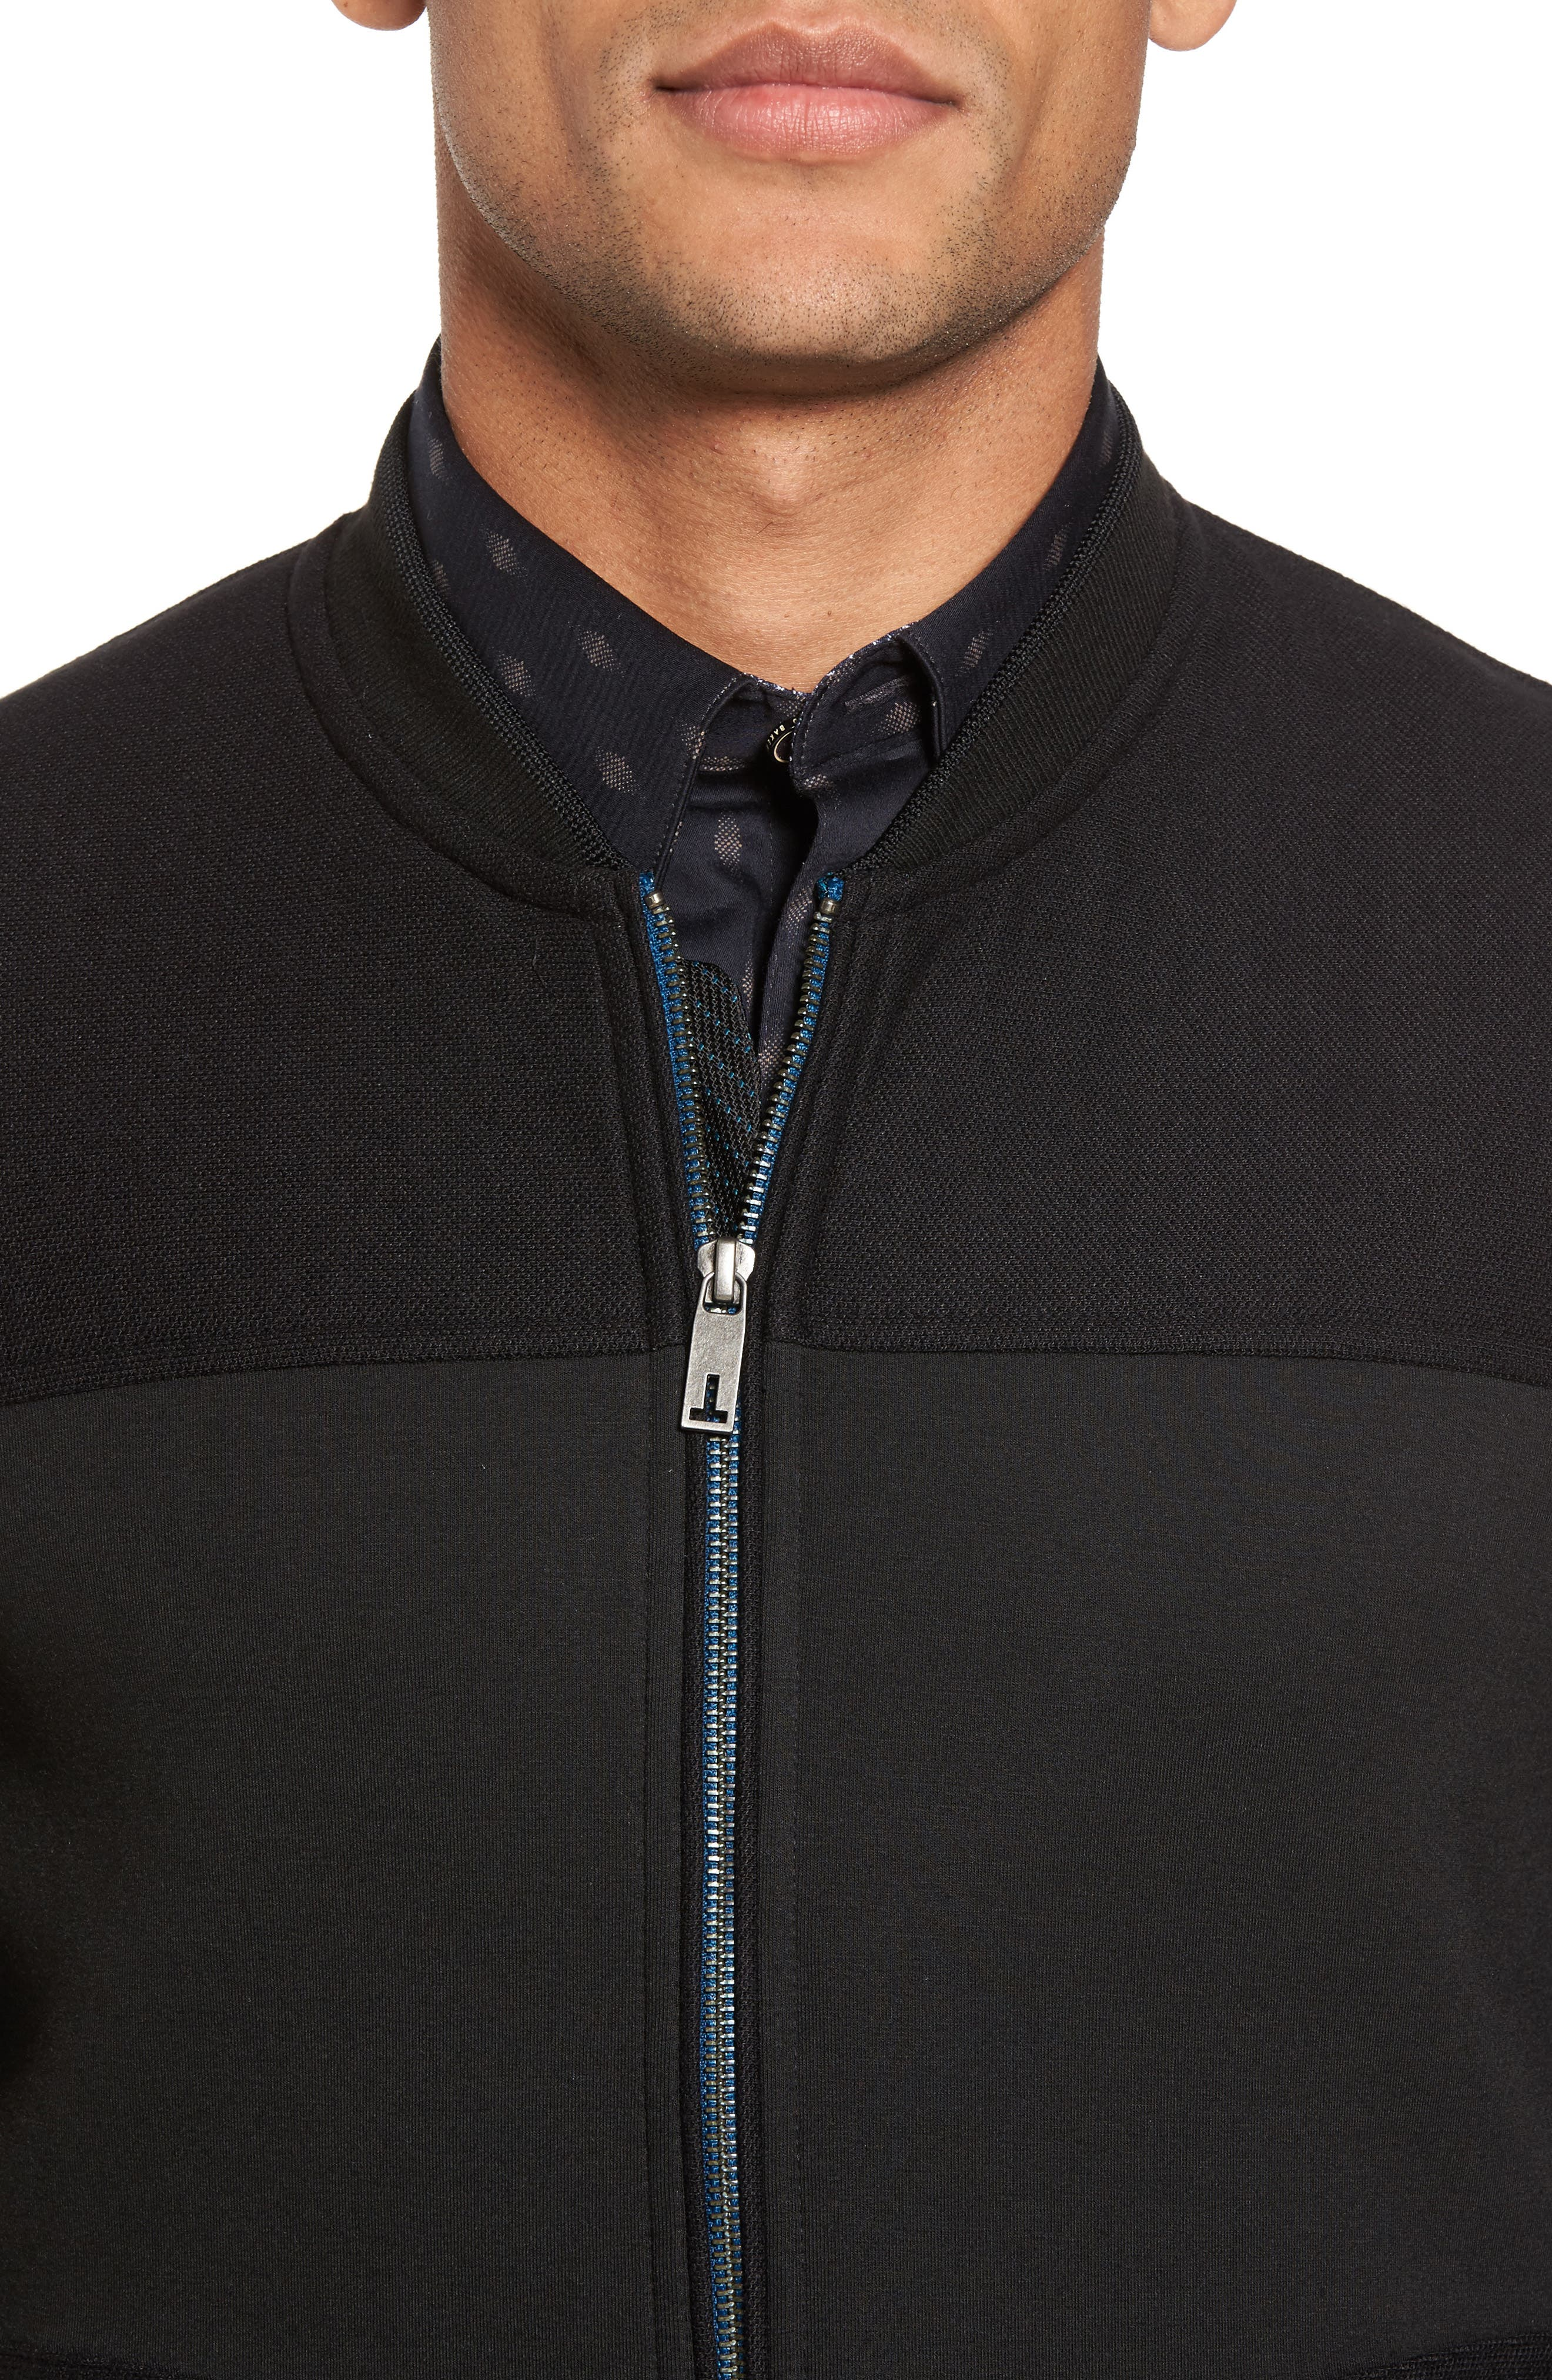 Outme Trim Textured Bomber,                             Alternate thumbnail 4, color,                             001